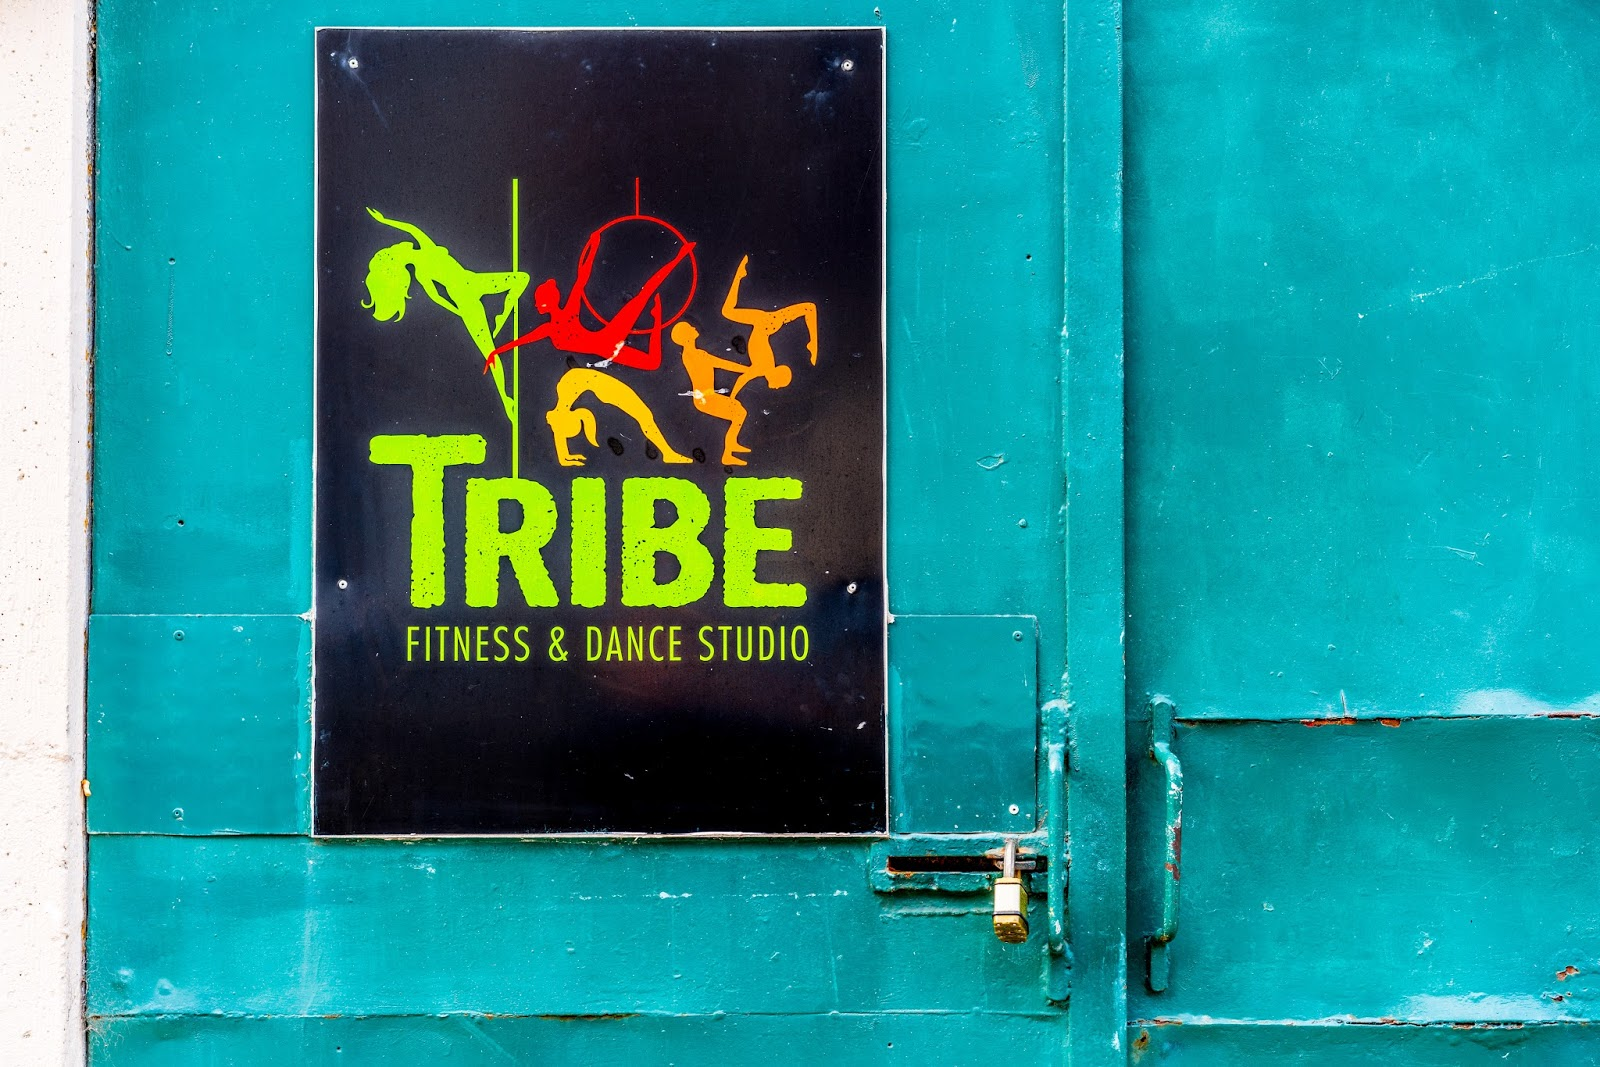 TRIBE Fitness and Dance Studio - photo